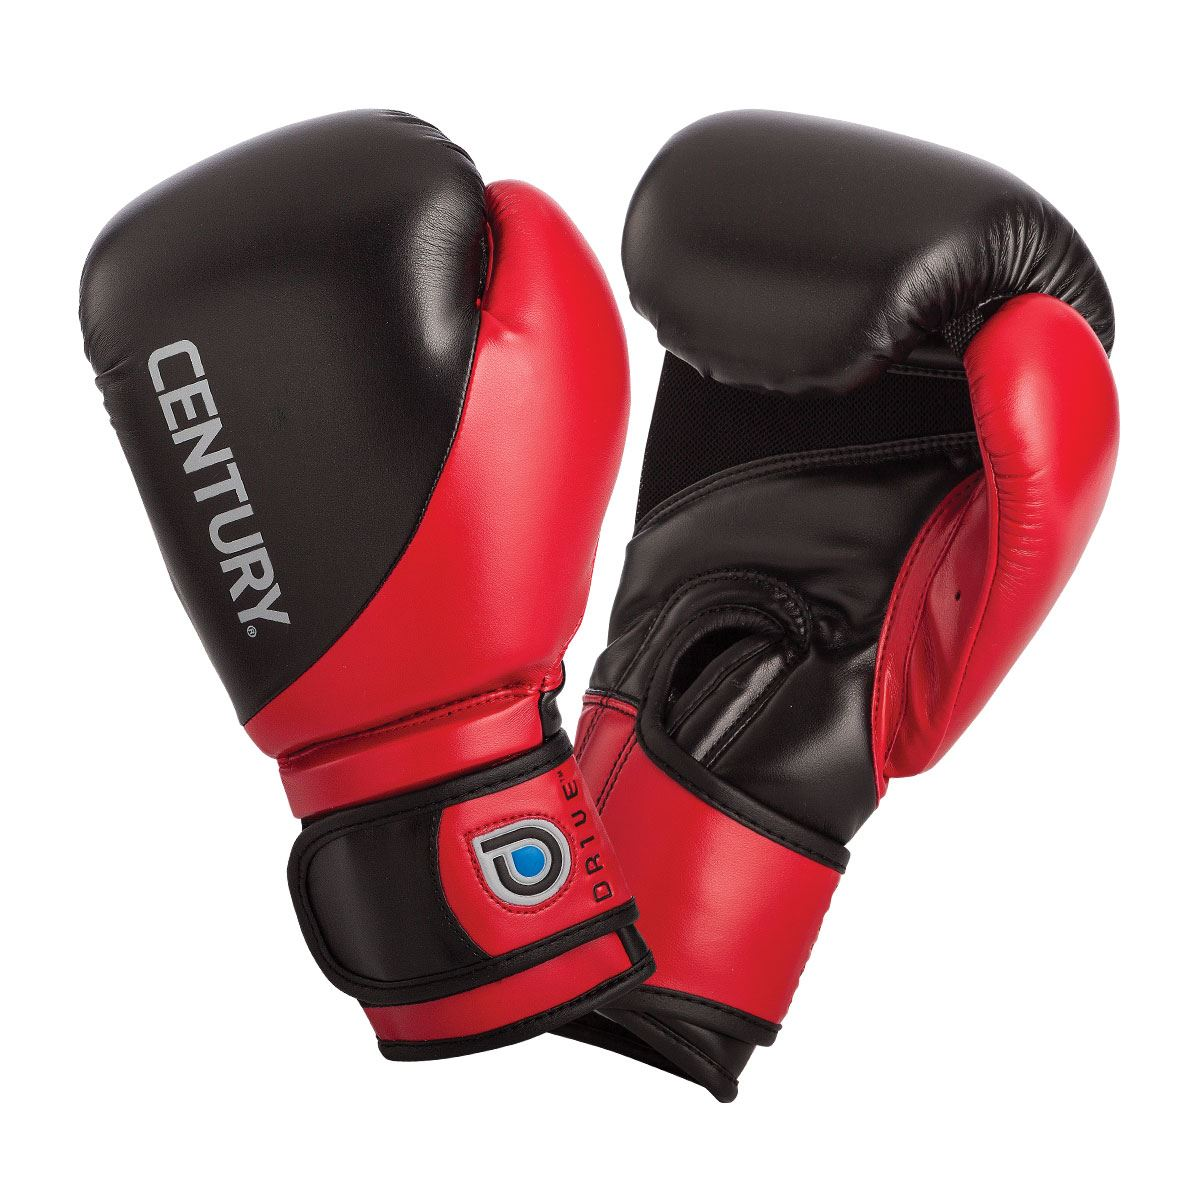 Boking Gloves: Century Drive Youth Boxing Gloves